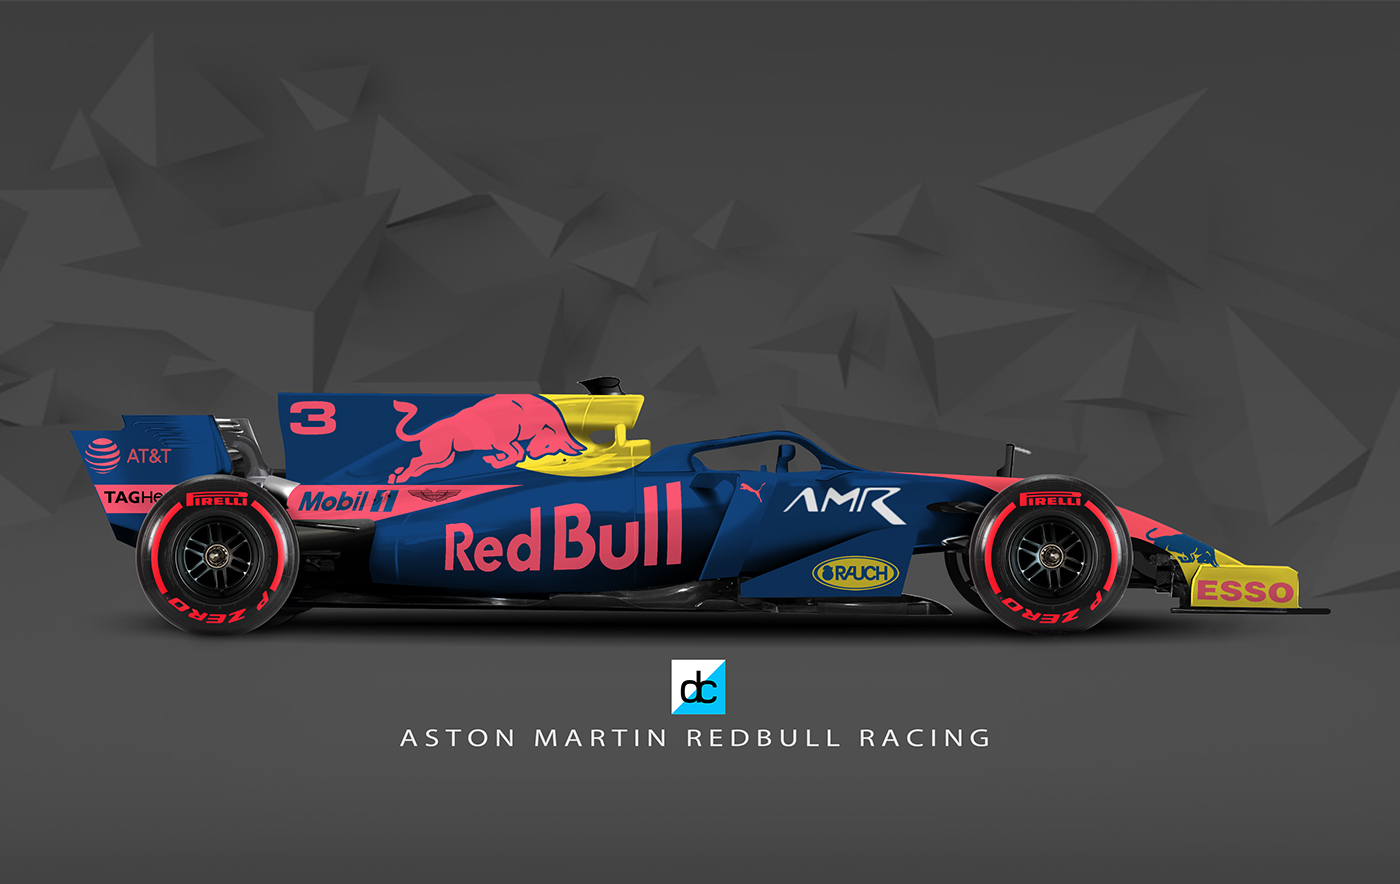 Renault F1 Jobs >> 2019 AMR Red Bull Concept Livery. on Behance